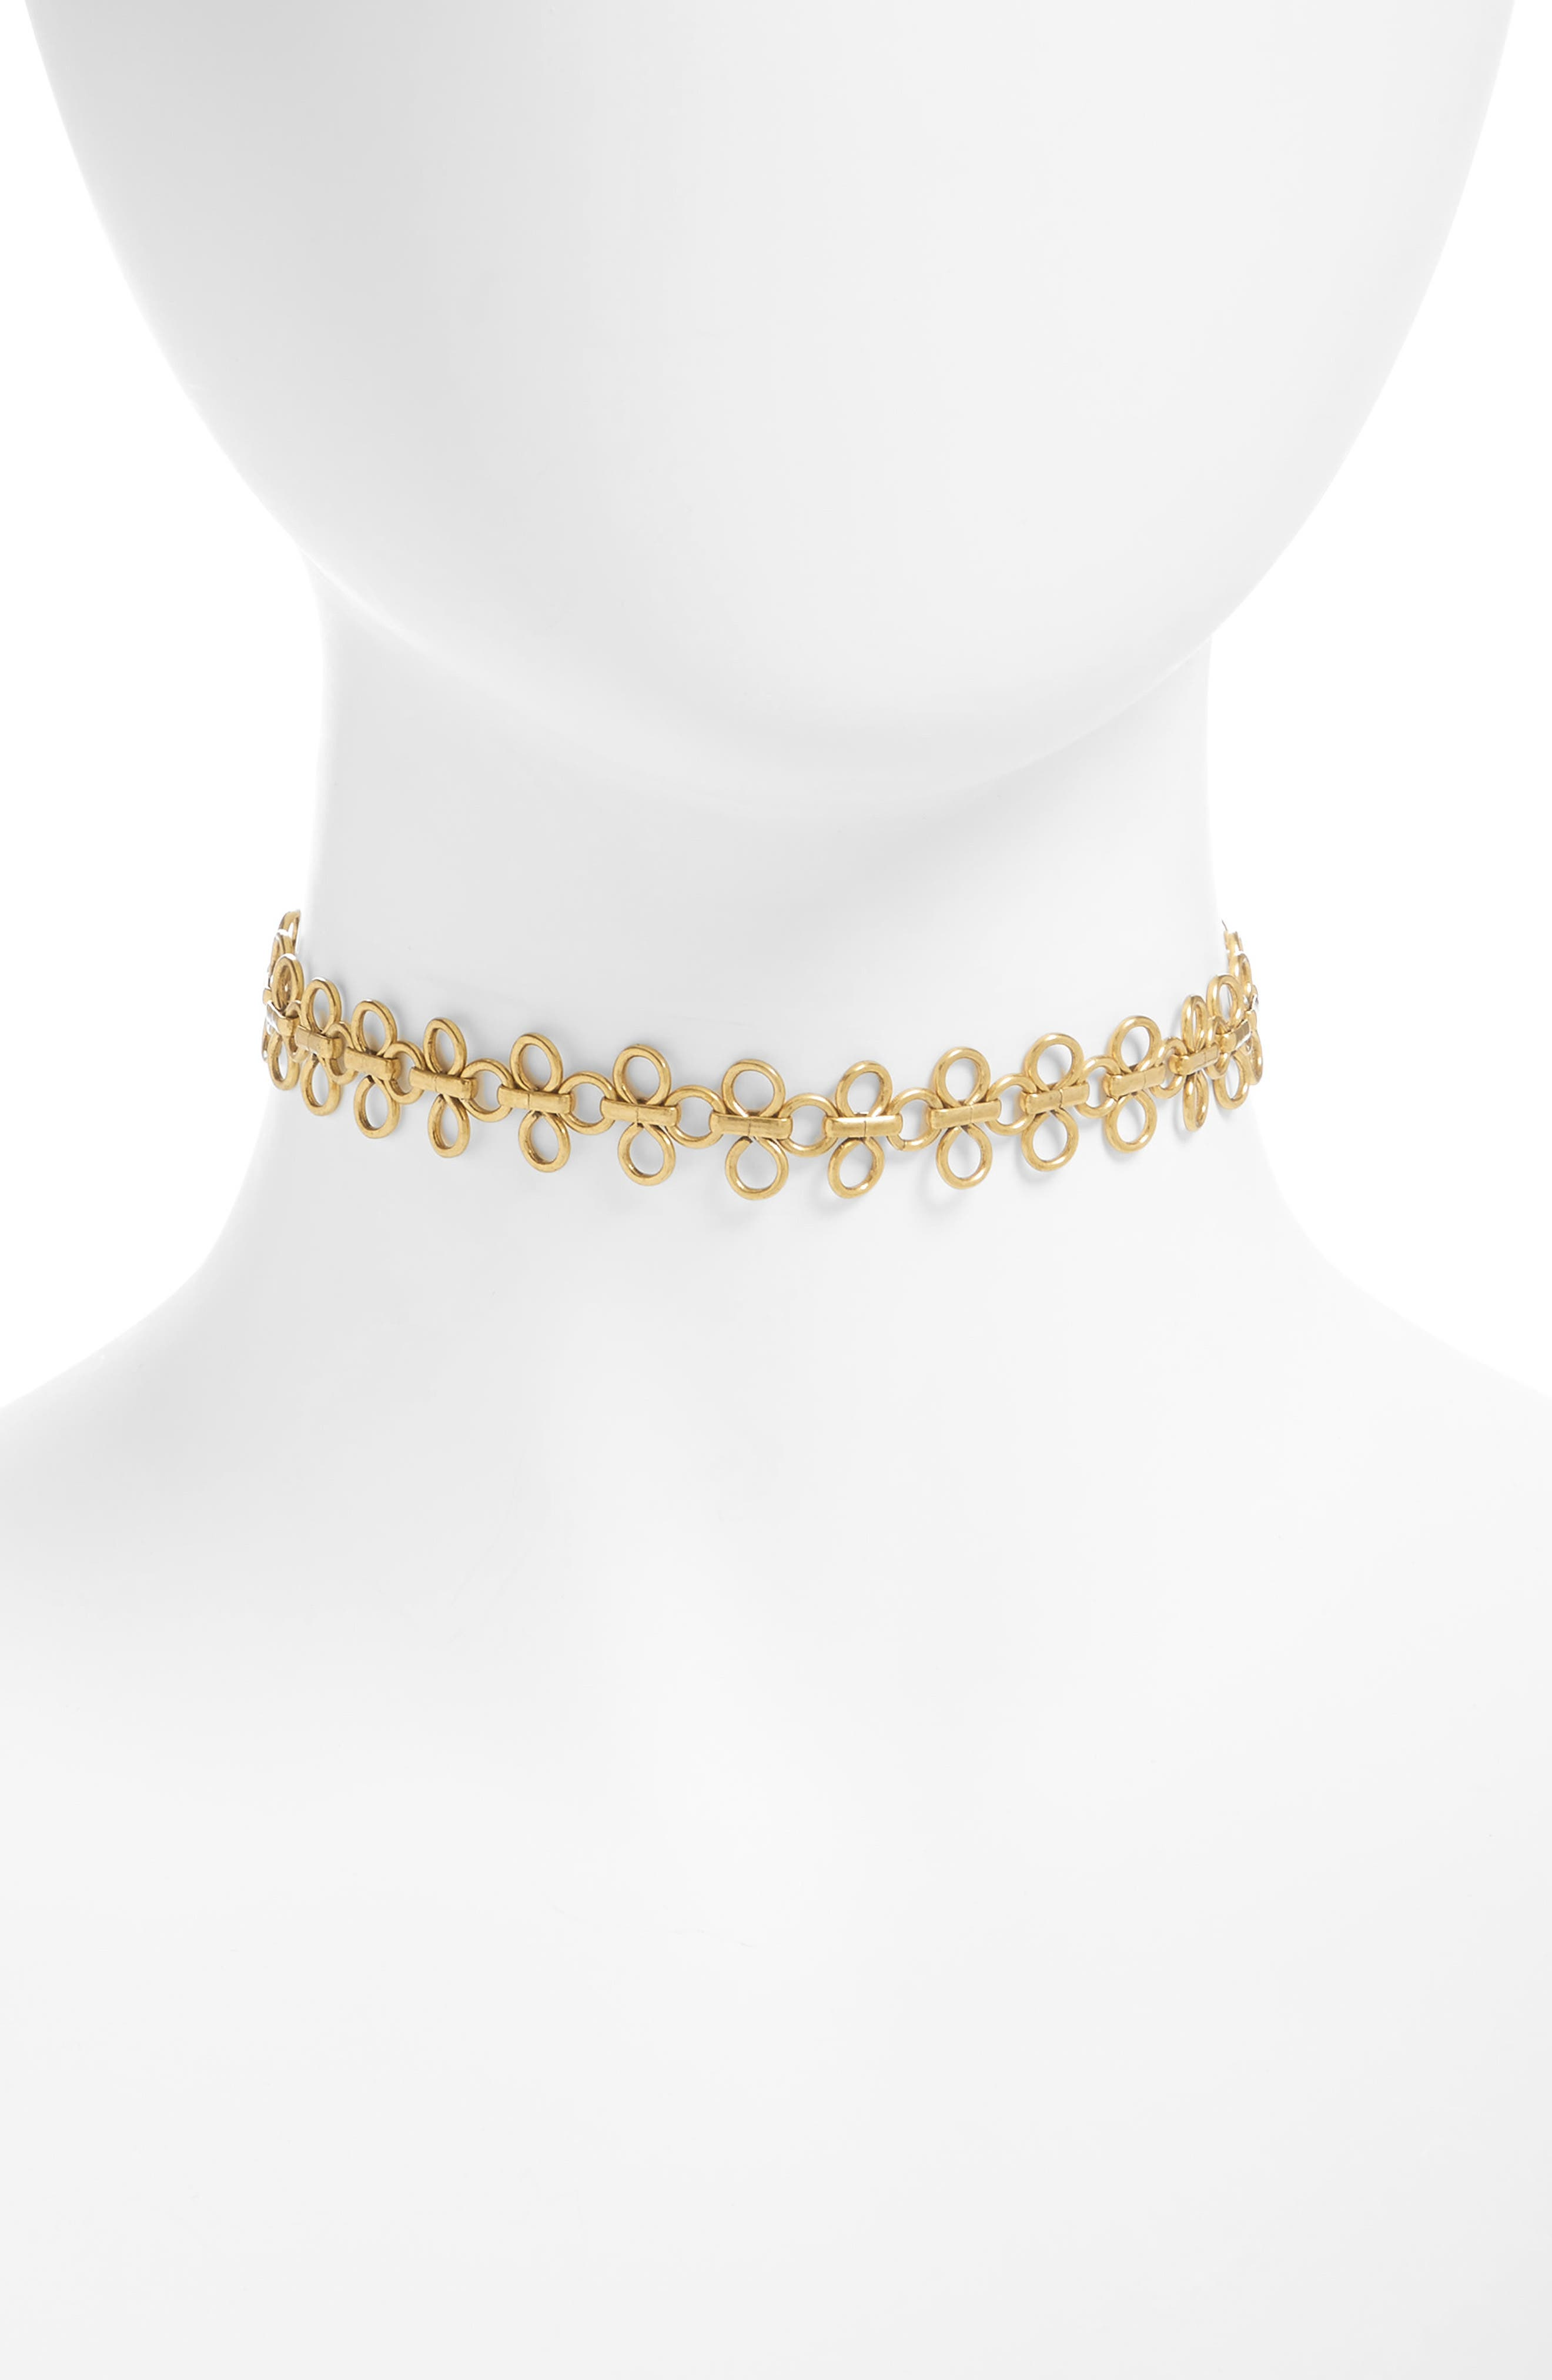 Alternate Image 1 Selected - Luv AJ Lace Link Choker Necklace